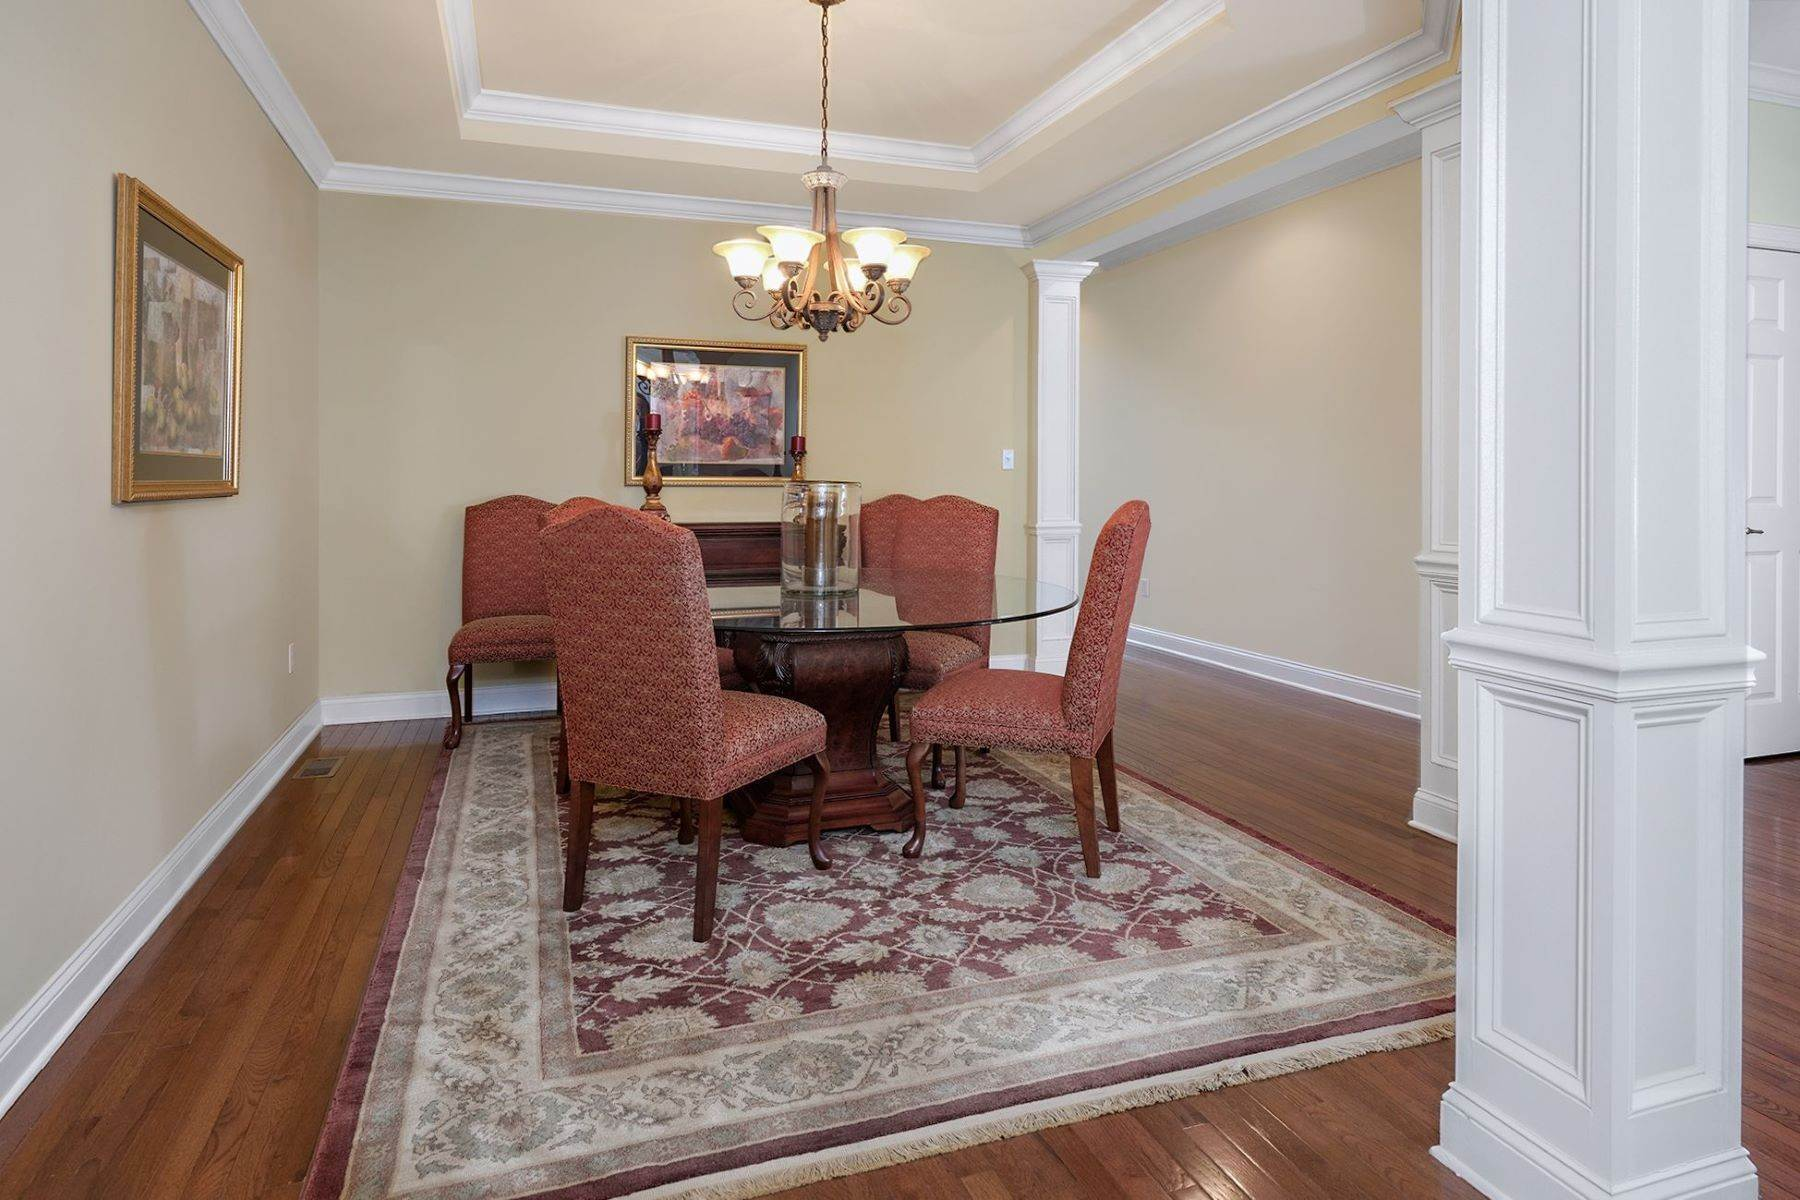 11. Condominiums for Sale at In Ventana At Lawrenceville 8 Schindler Court, Lawrenceville, New Jersey 08648 United States